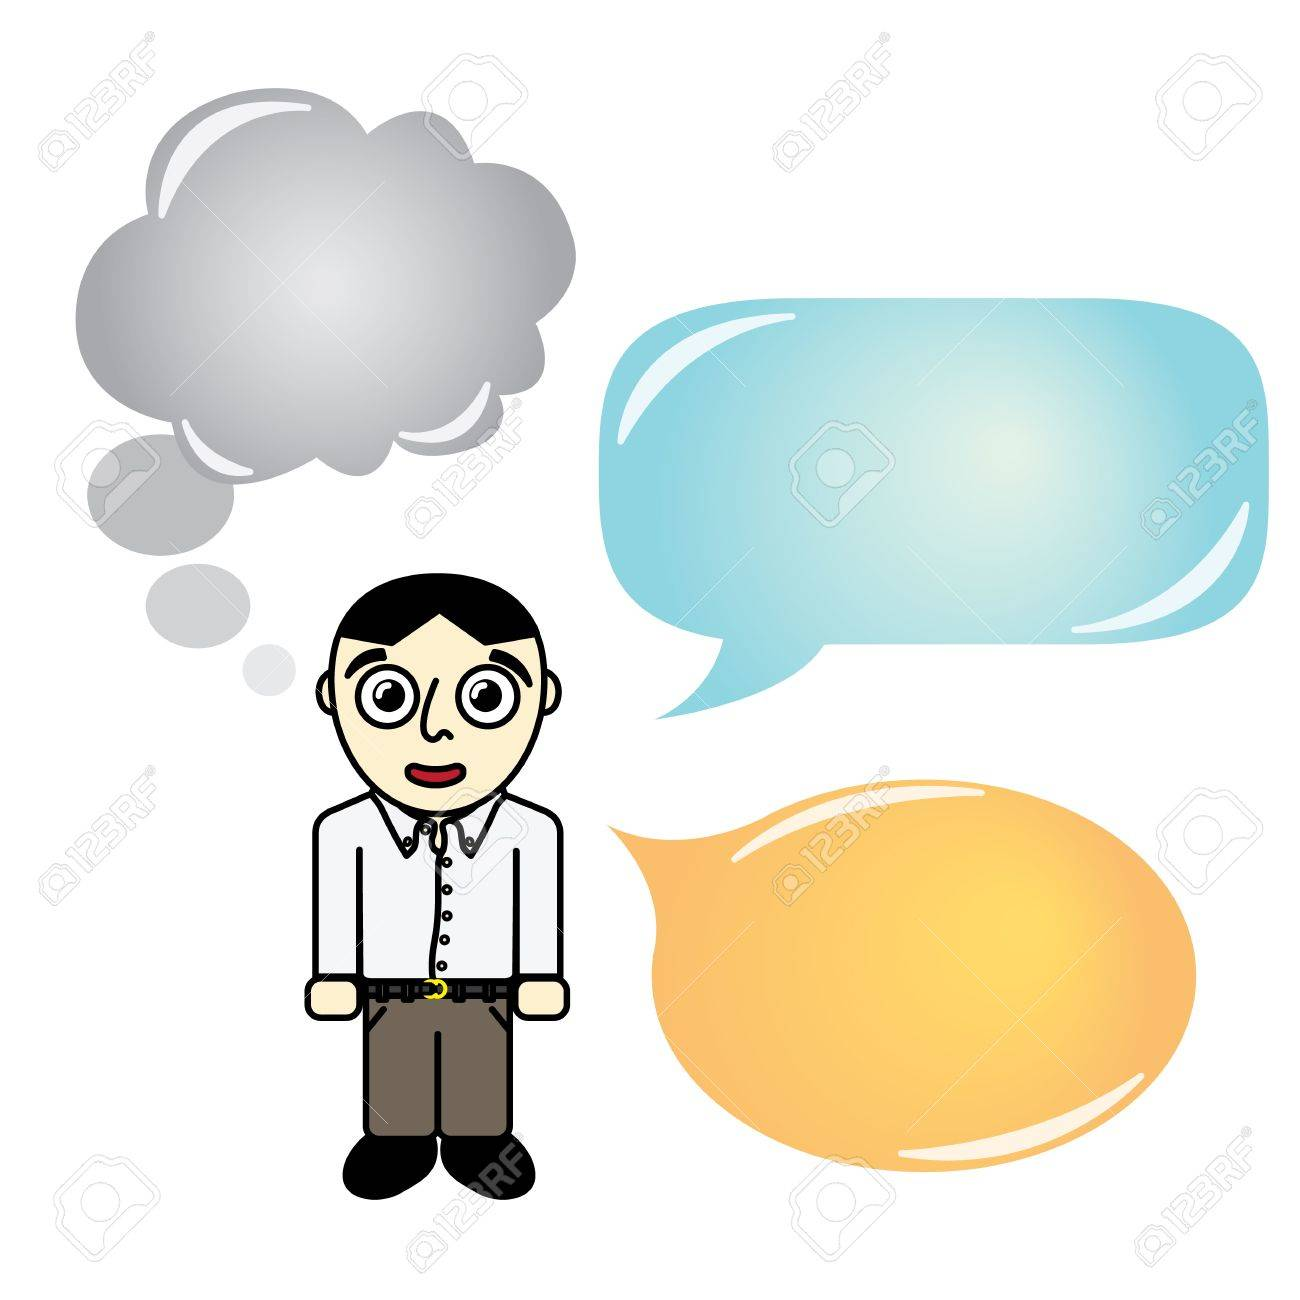 Cartoon man with different type of Talking Bubble Stock Vector - 16922112